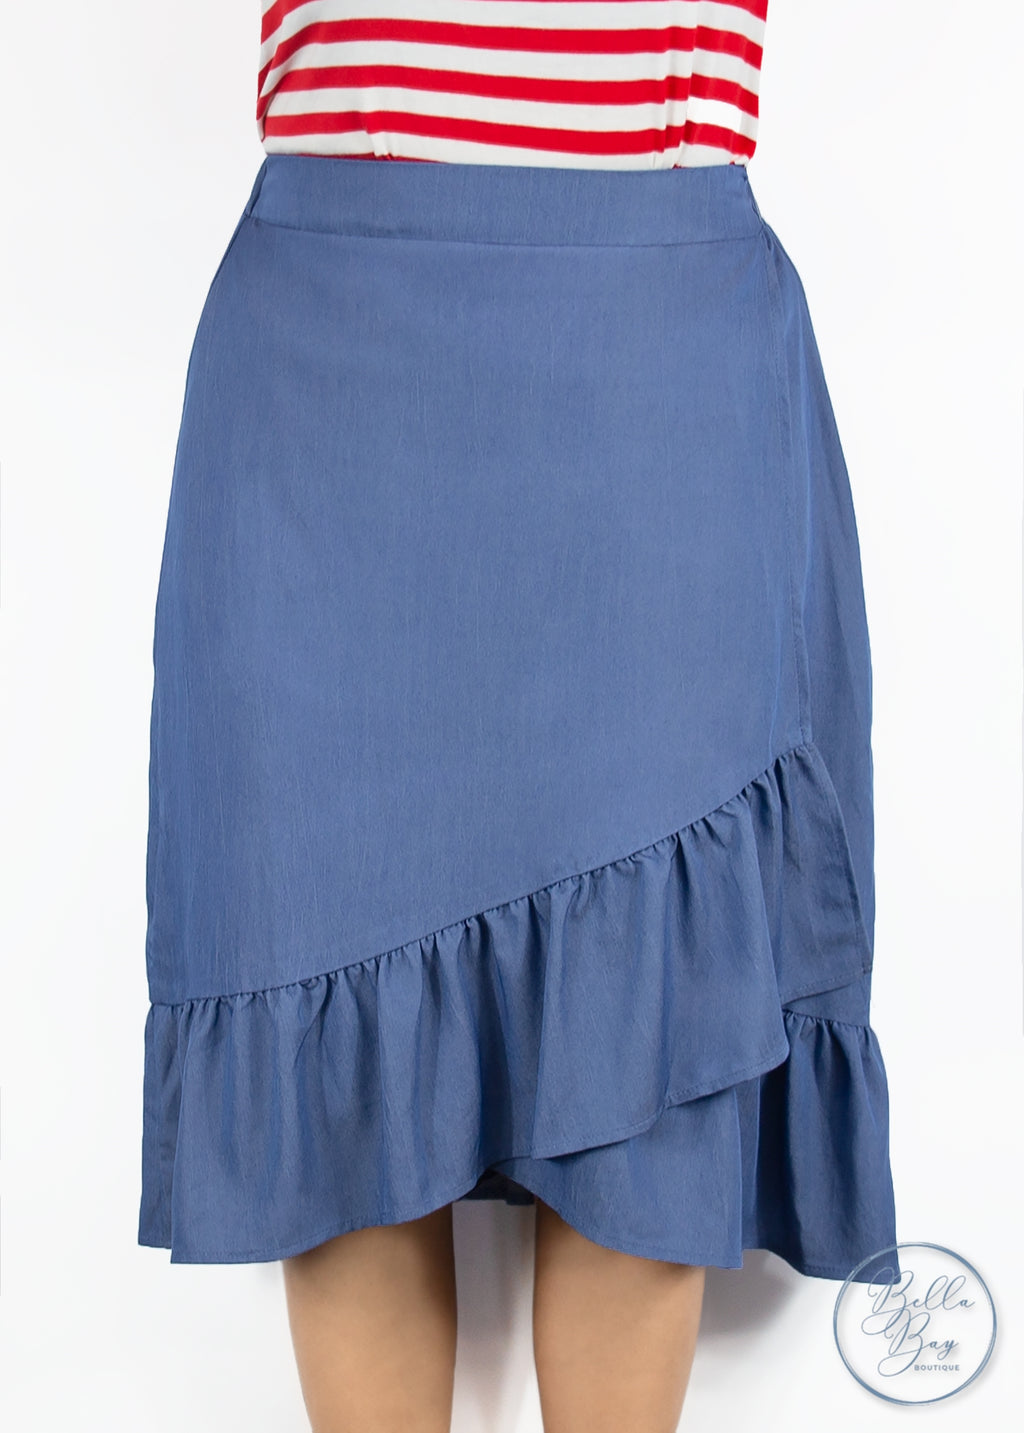 Paisley Raye Kerria Skirt- Denim (L) - Paisley Raye with Bella Bay Boutique, shop now at  https://shopbellabay.com/ or locally in Newport Oregon